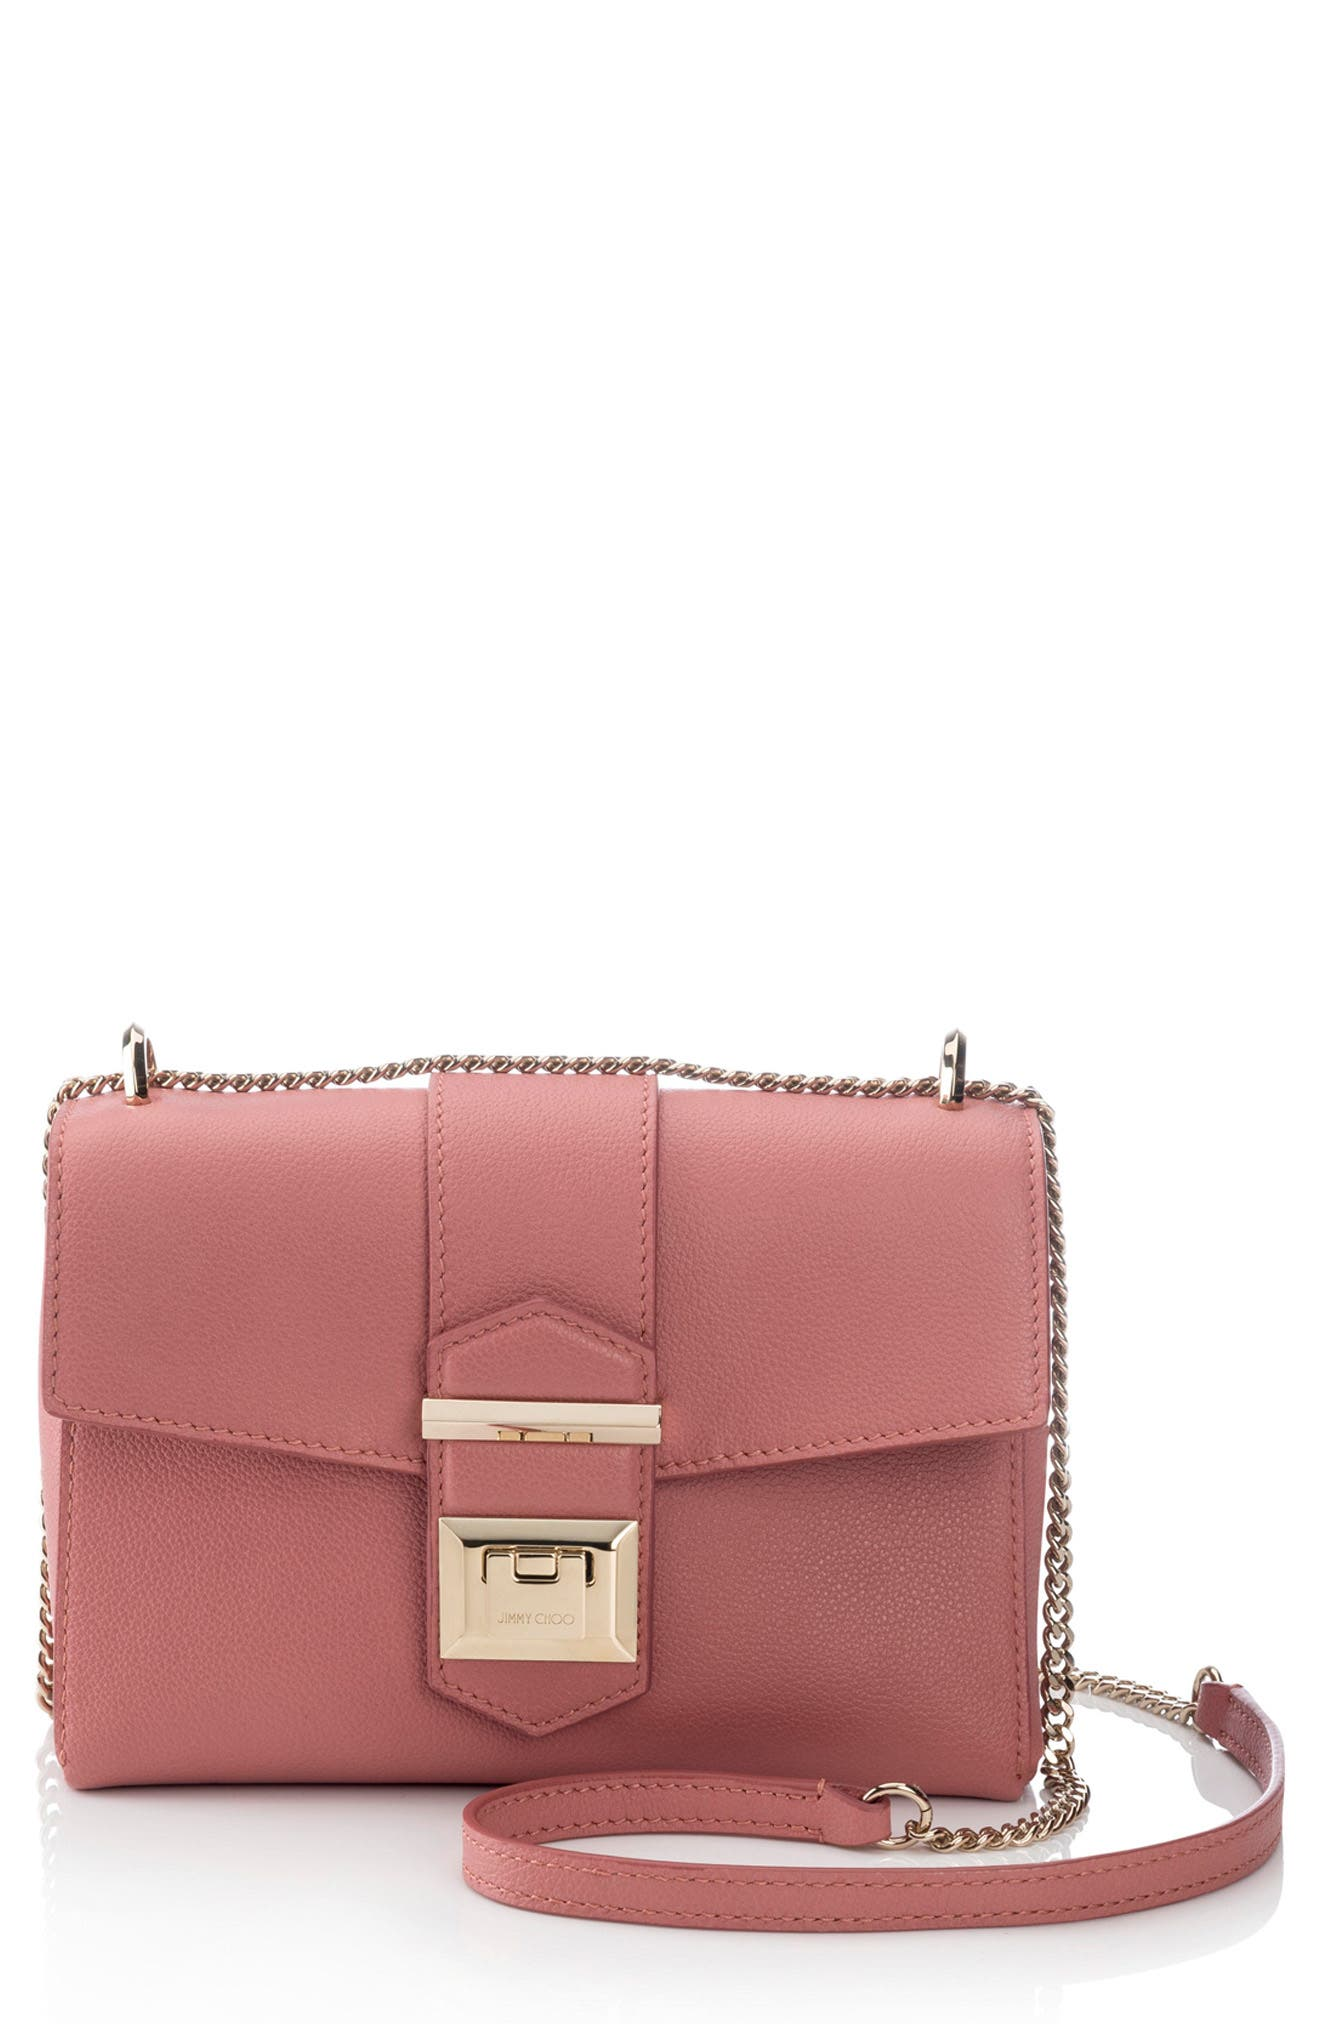 Marianne Leather Crossbody Bag,                             Main thumbnail 1, color,                             ROSEWOOD